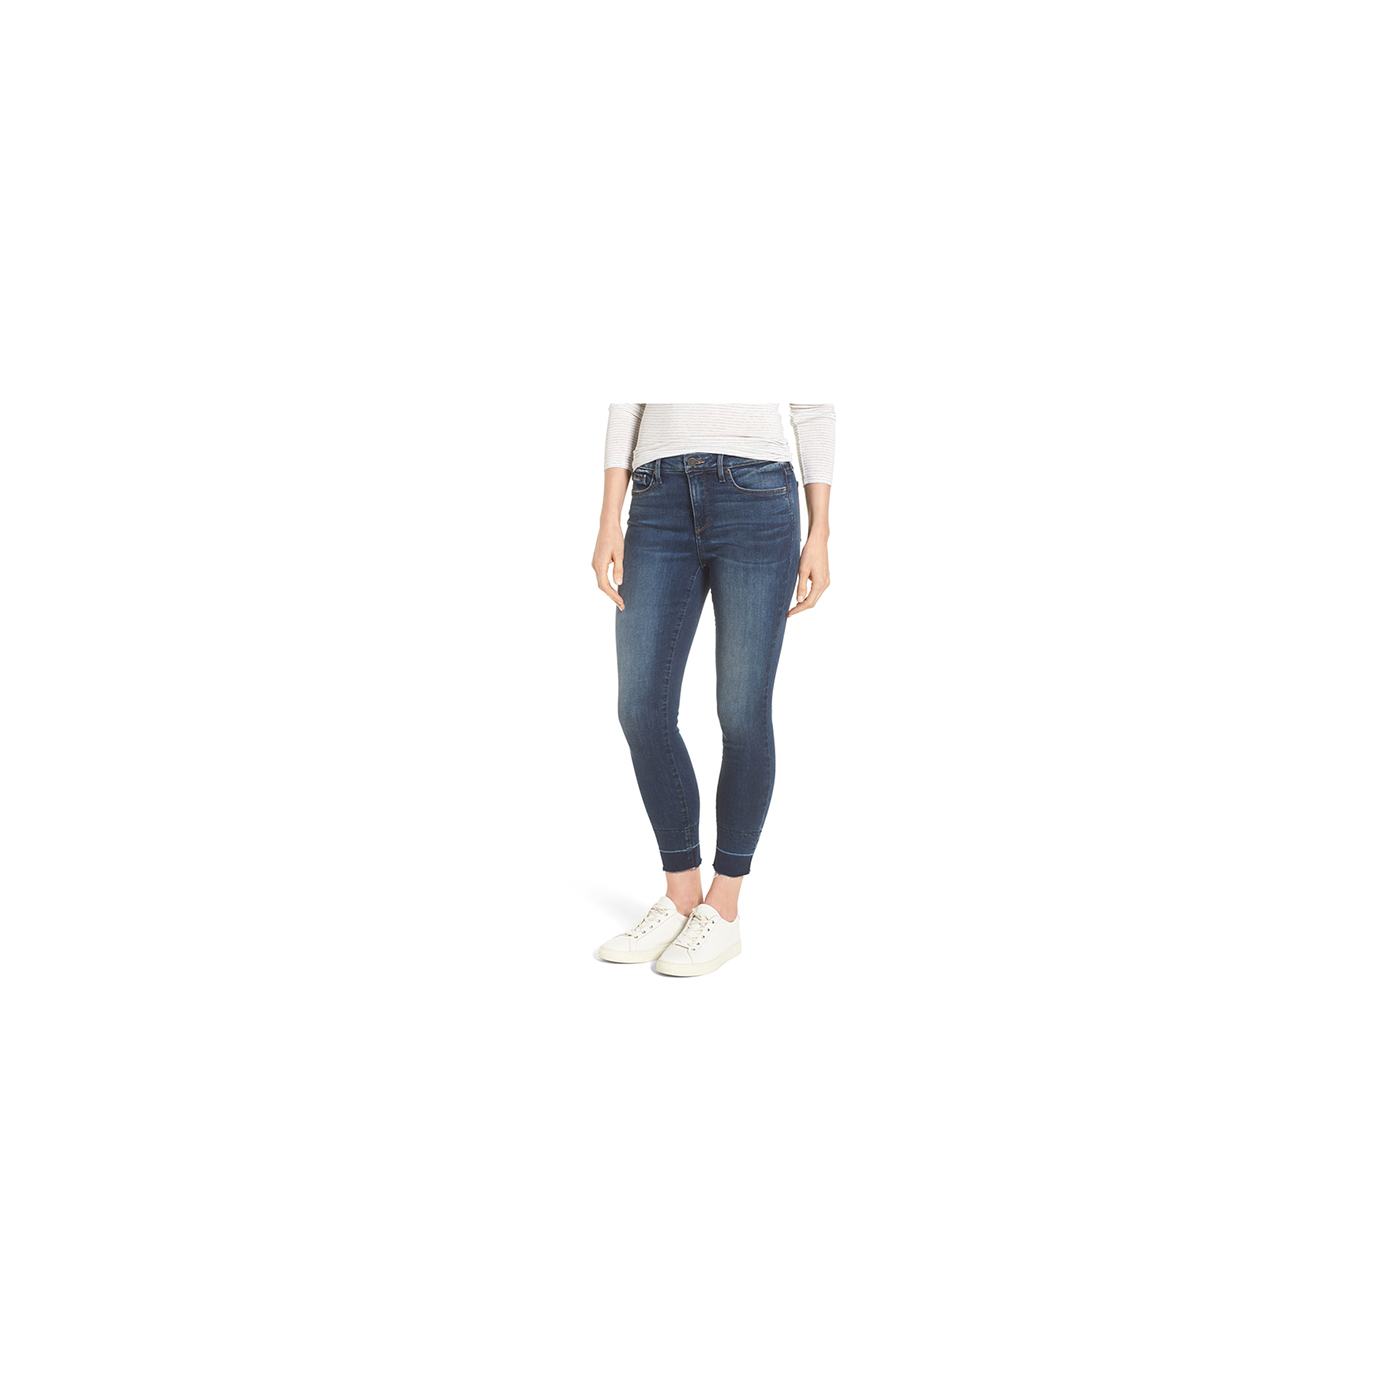 NYDJ Blue Jeans , Bestselling Jeans at the Nordstrom Anniversary Sale